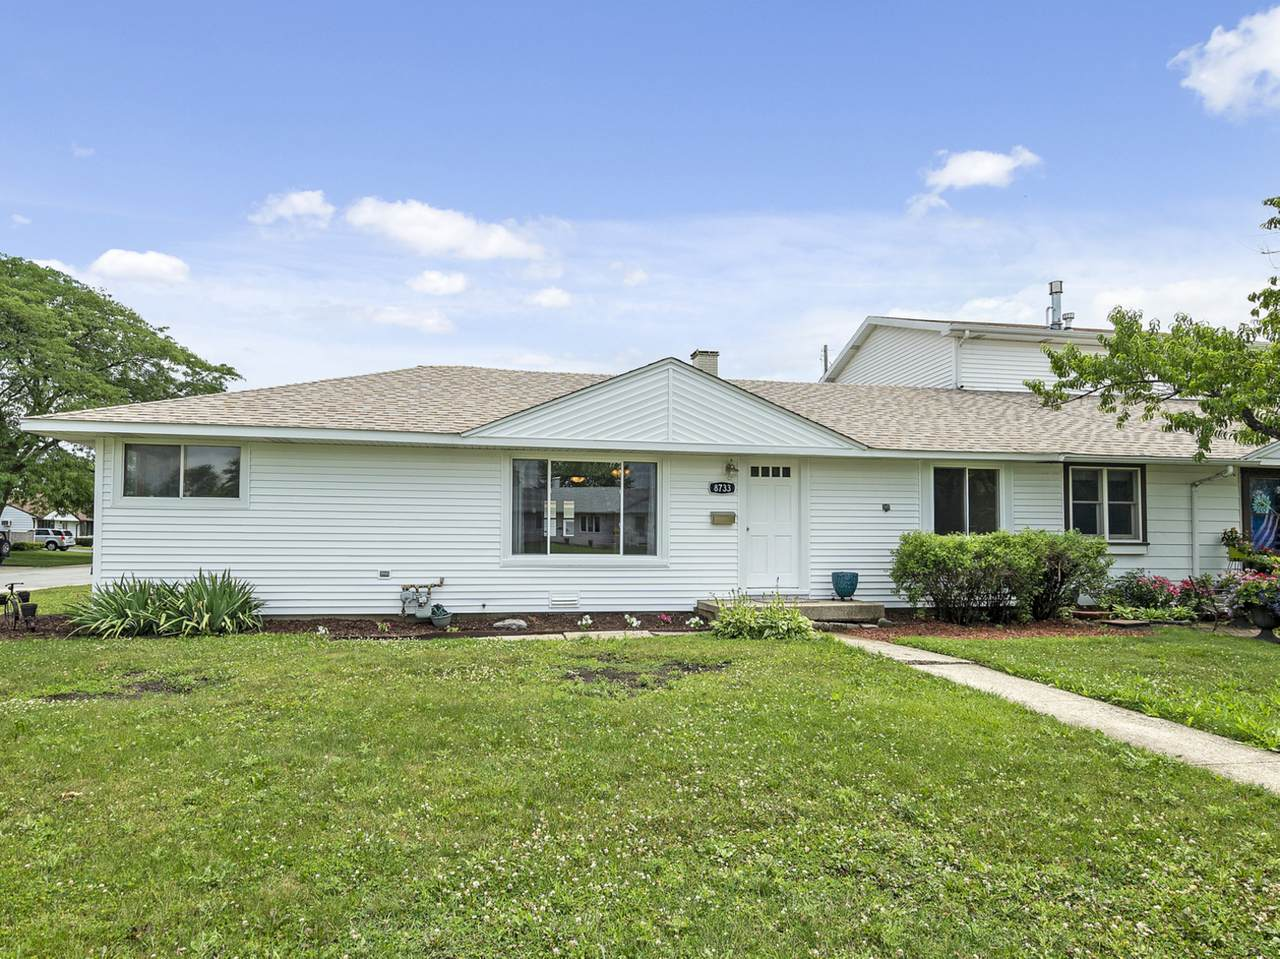 8733 Beck Place - Photo 1